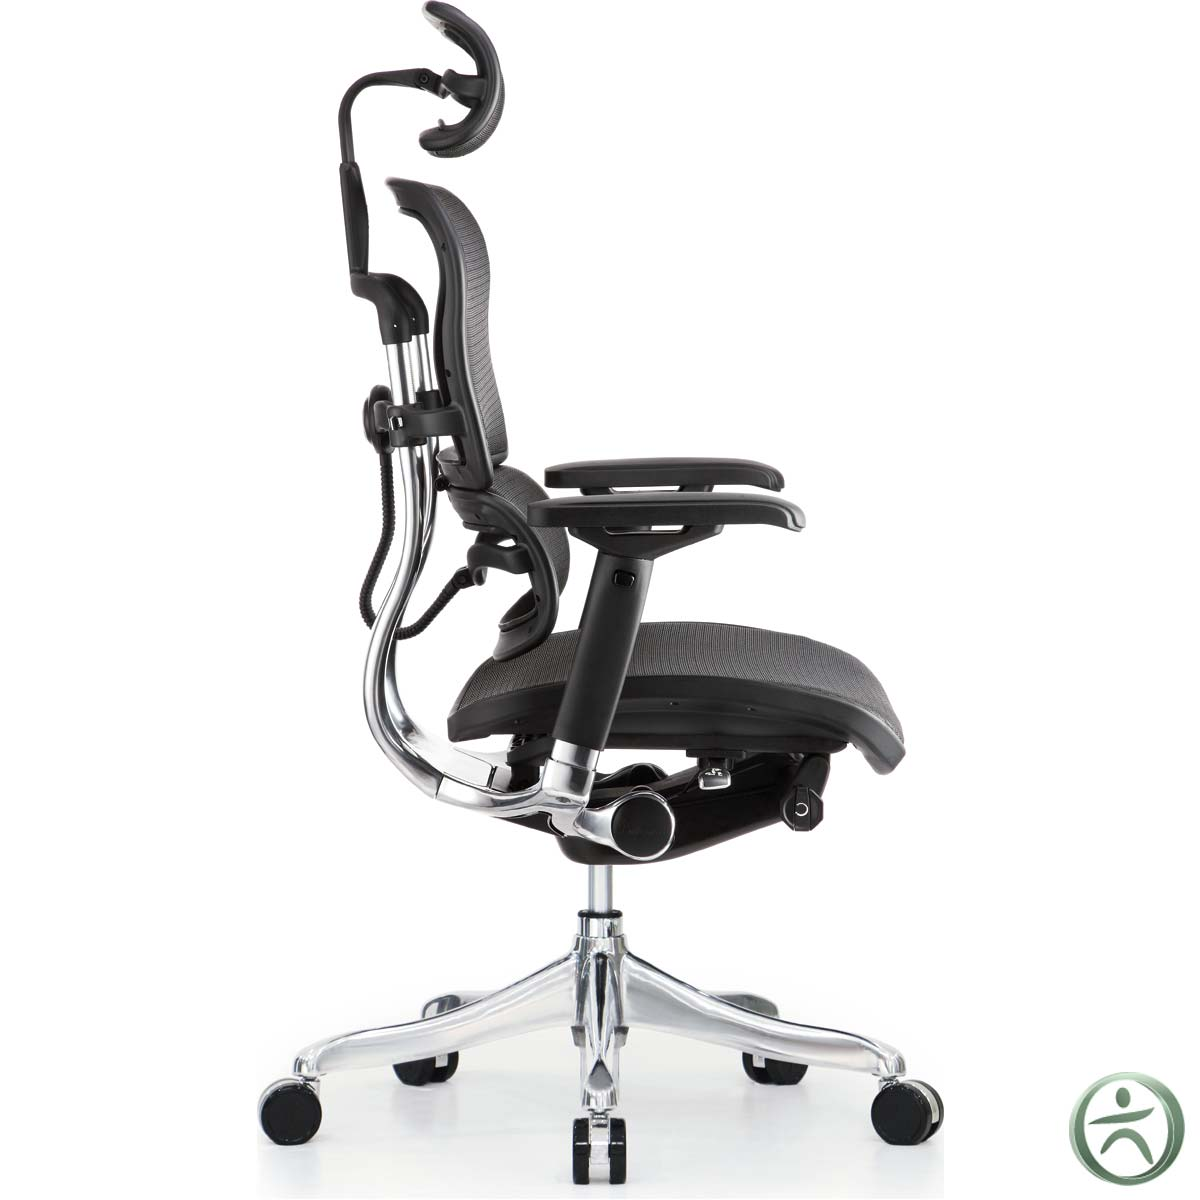 Raynor Chairs Shop Raynor Ergo Elite Chairs With Headrest Me22erglt